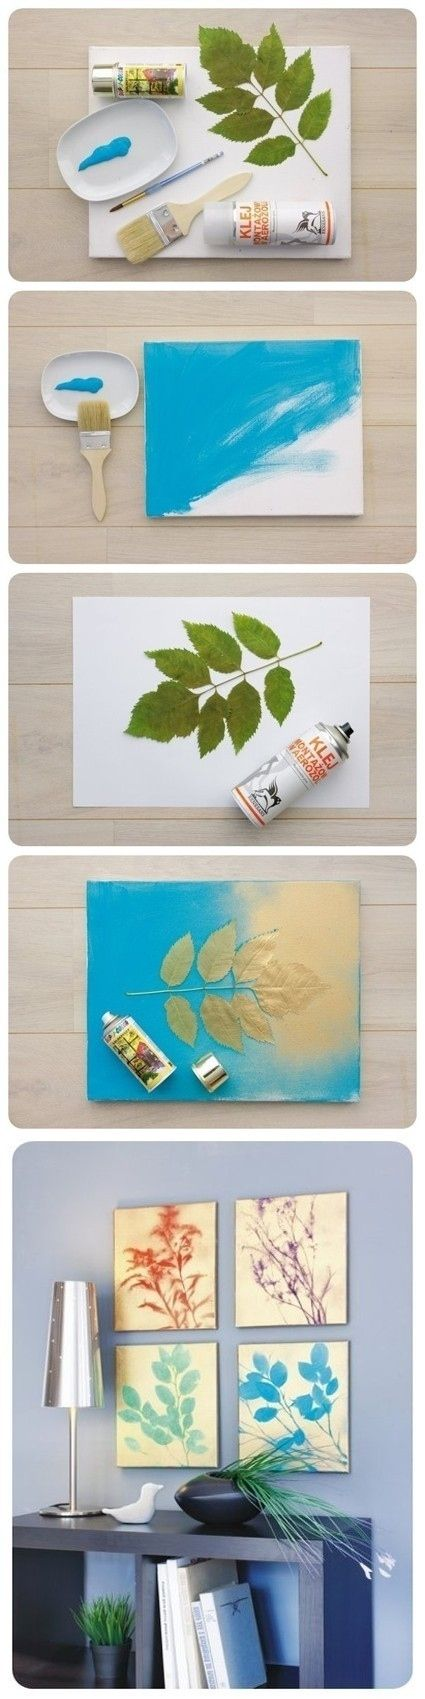 Gilded Leaf Art   30 Quick And Cozy Projects To Make This Fall